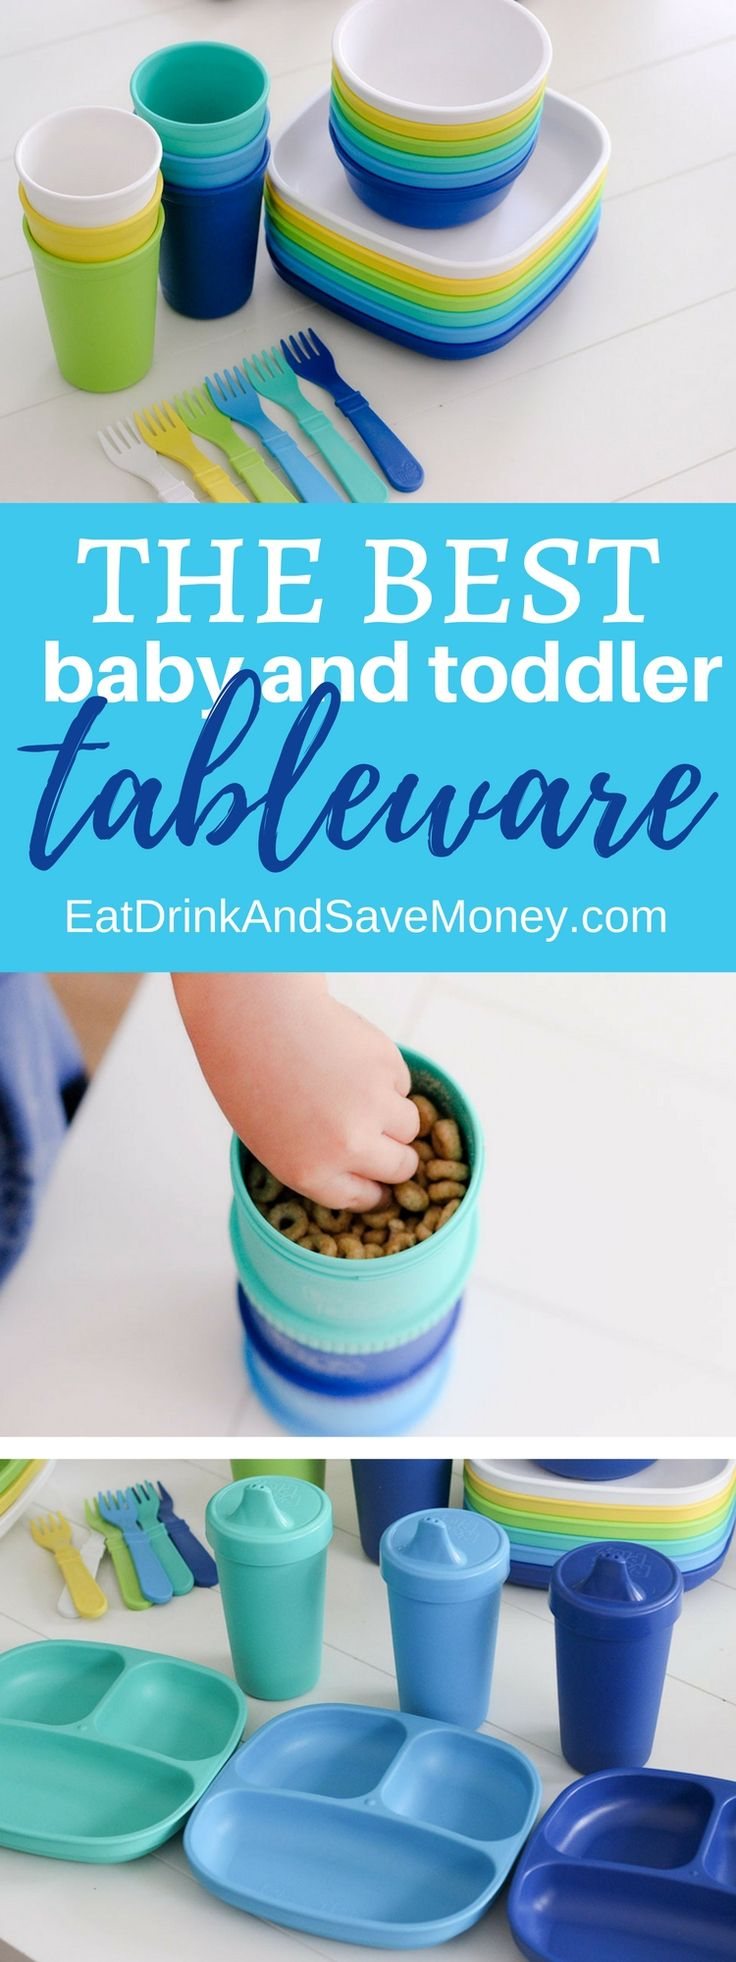 Re Play Recycled Review: The Best Toddler And Baby Tableware